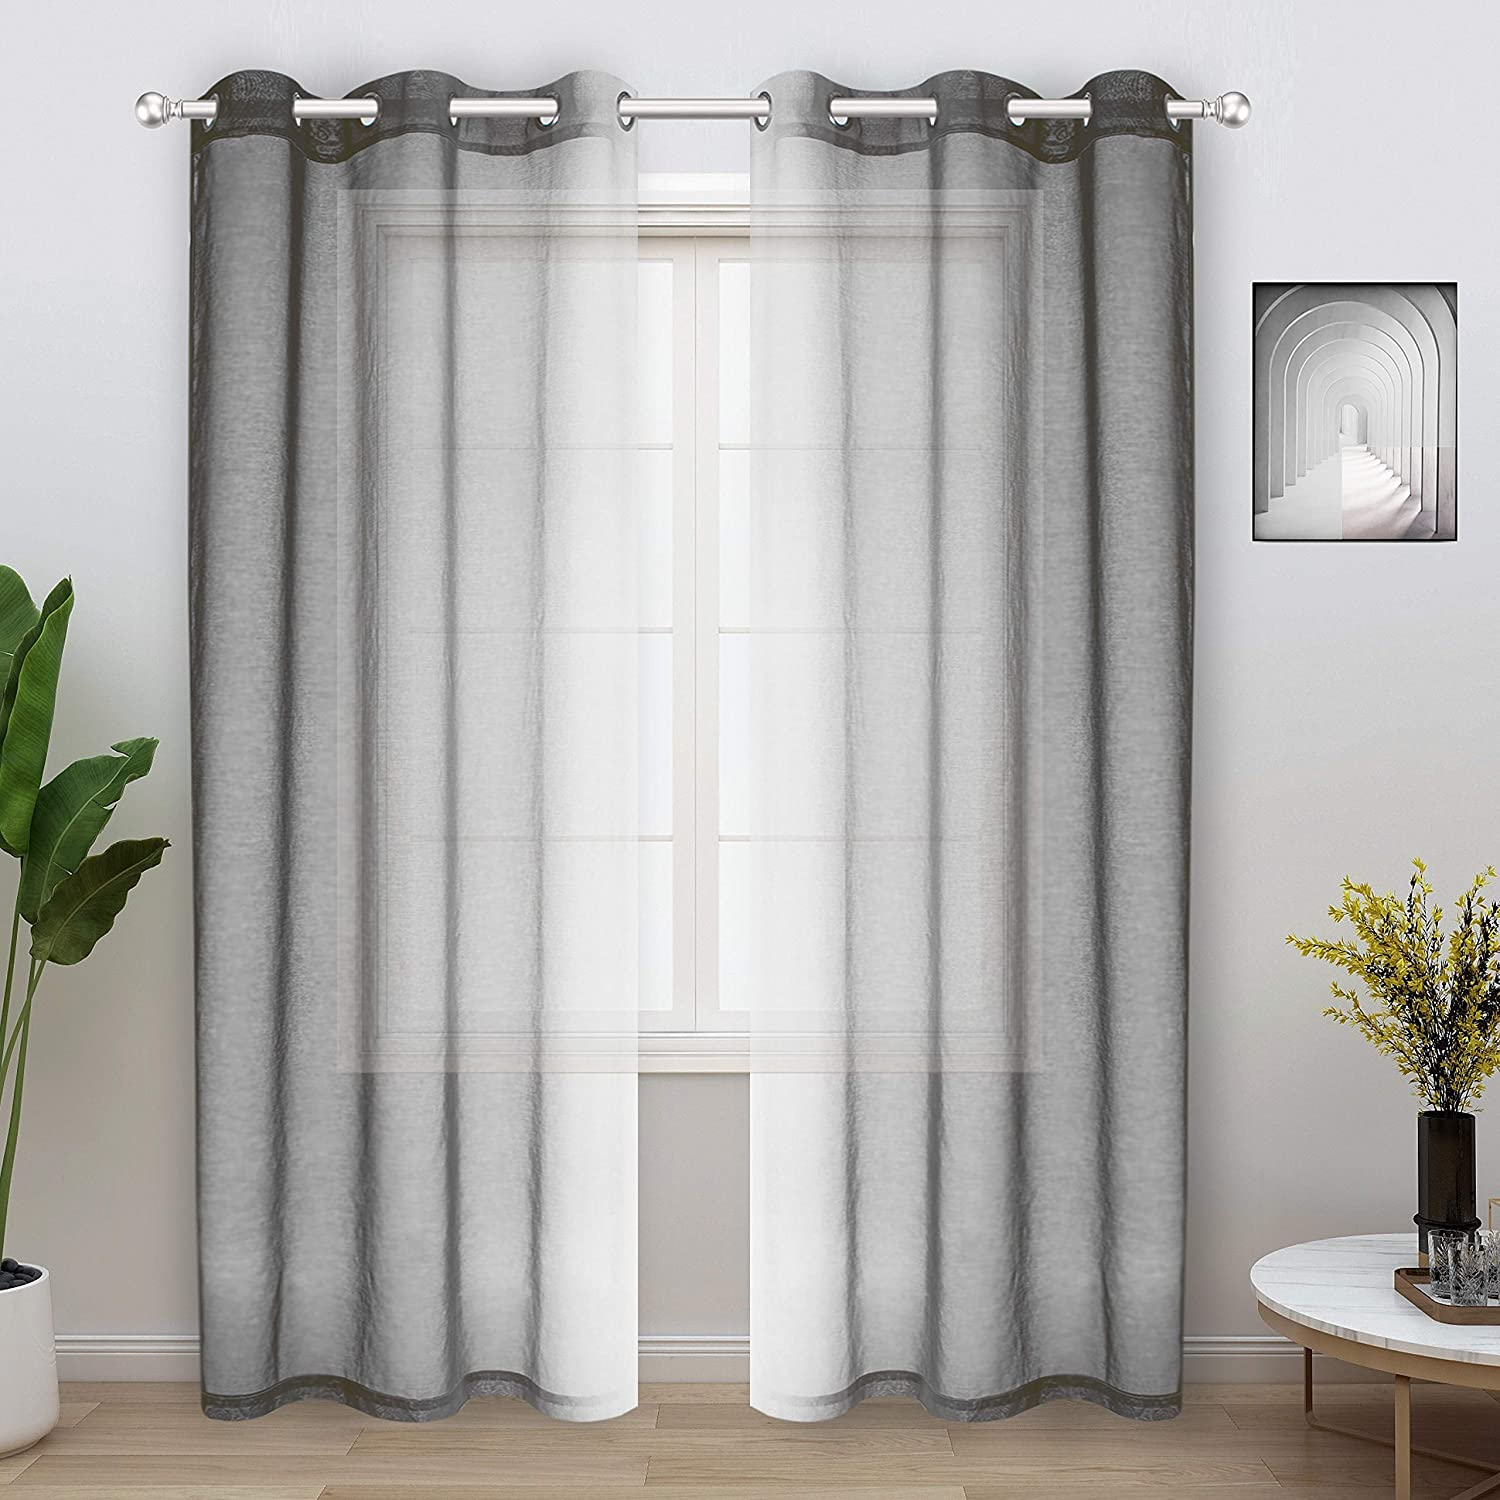 WONTEX Faux 正規品スーパーSALE×店内全品キャンペーン Linen 2 セール 登場から人気沸騰 Tone Ombre Living Curtains for B Room Sheer